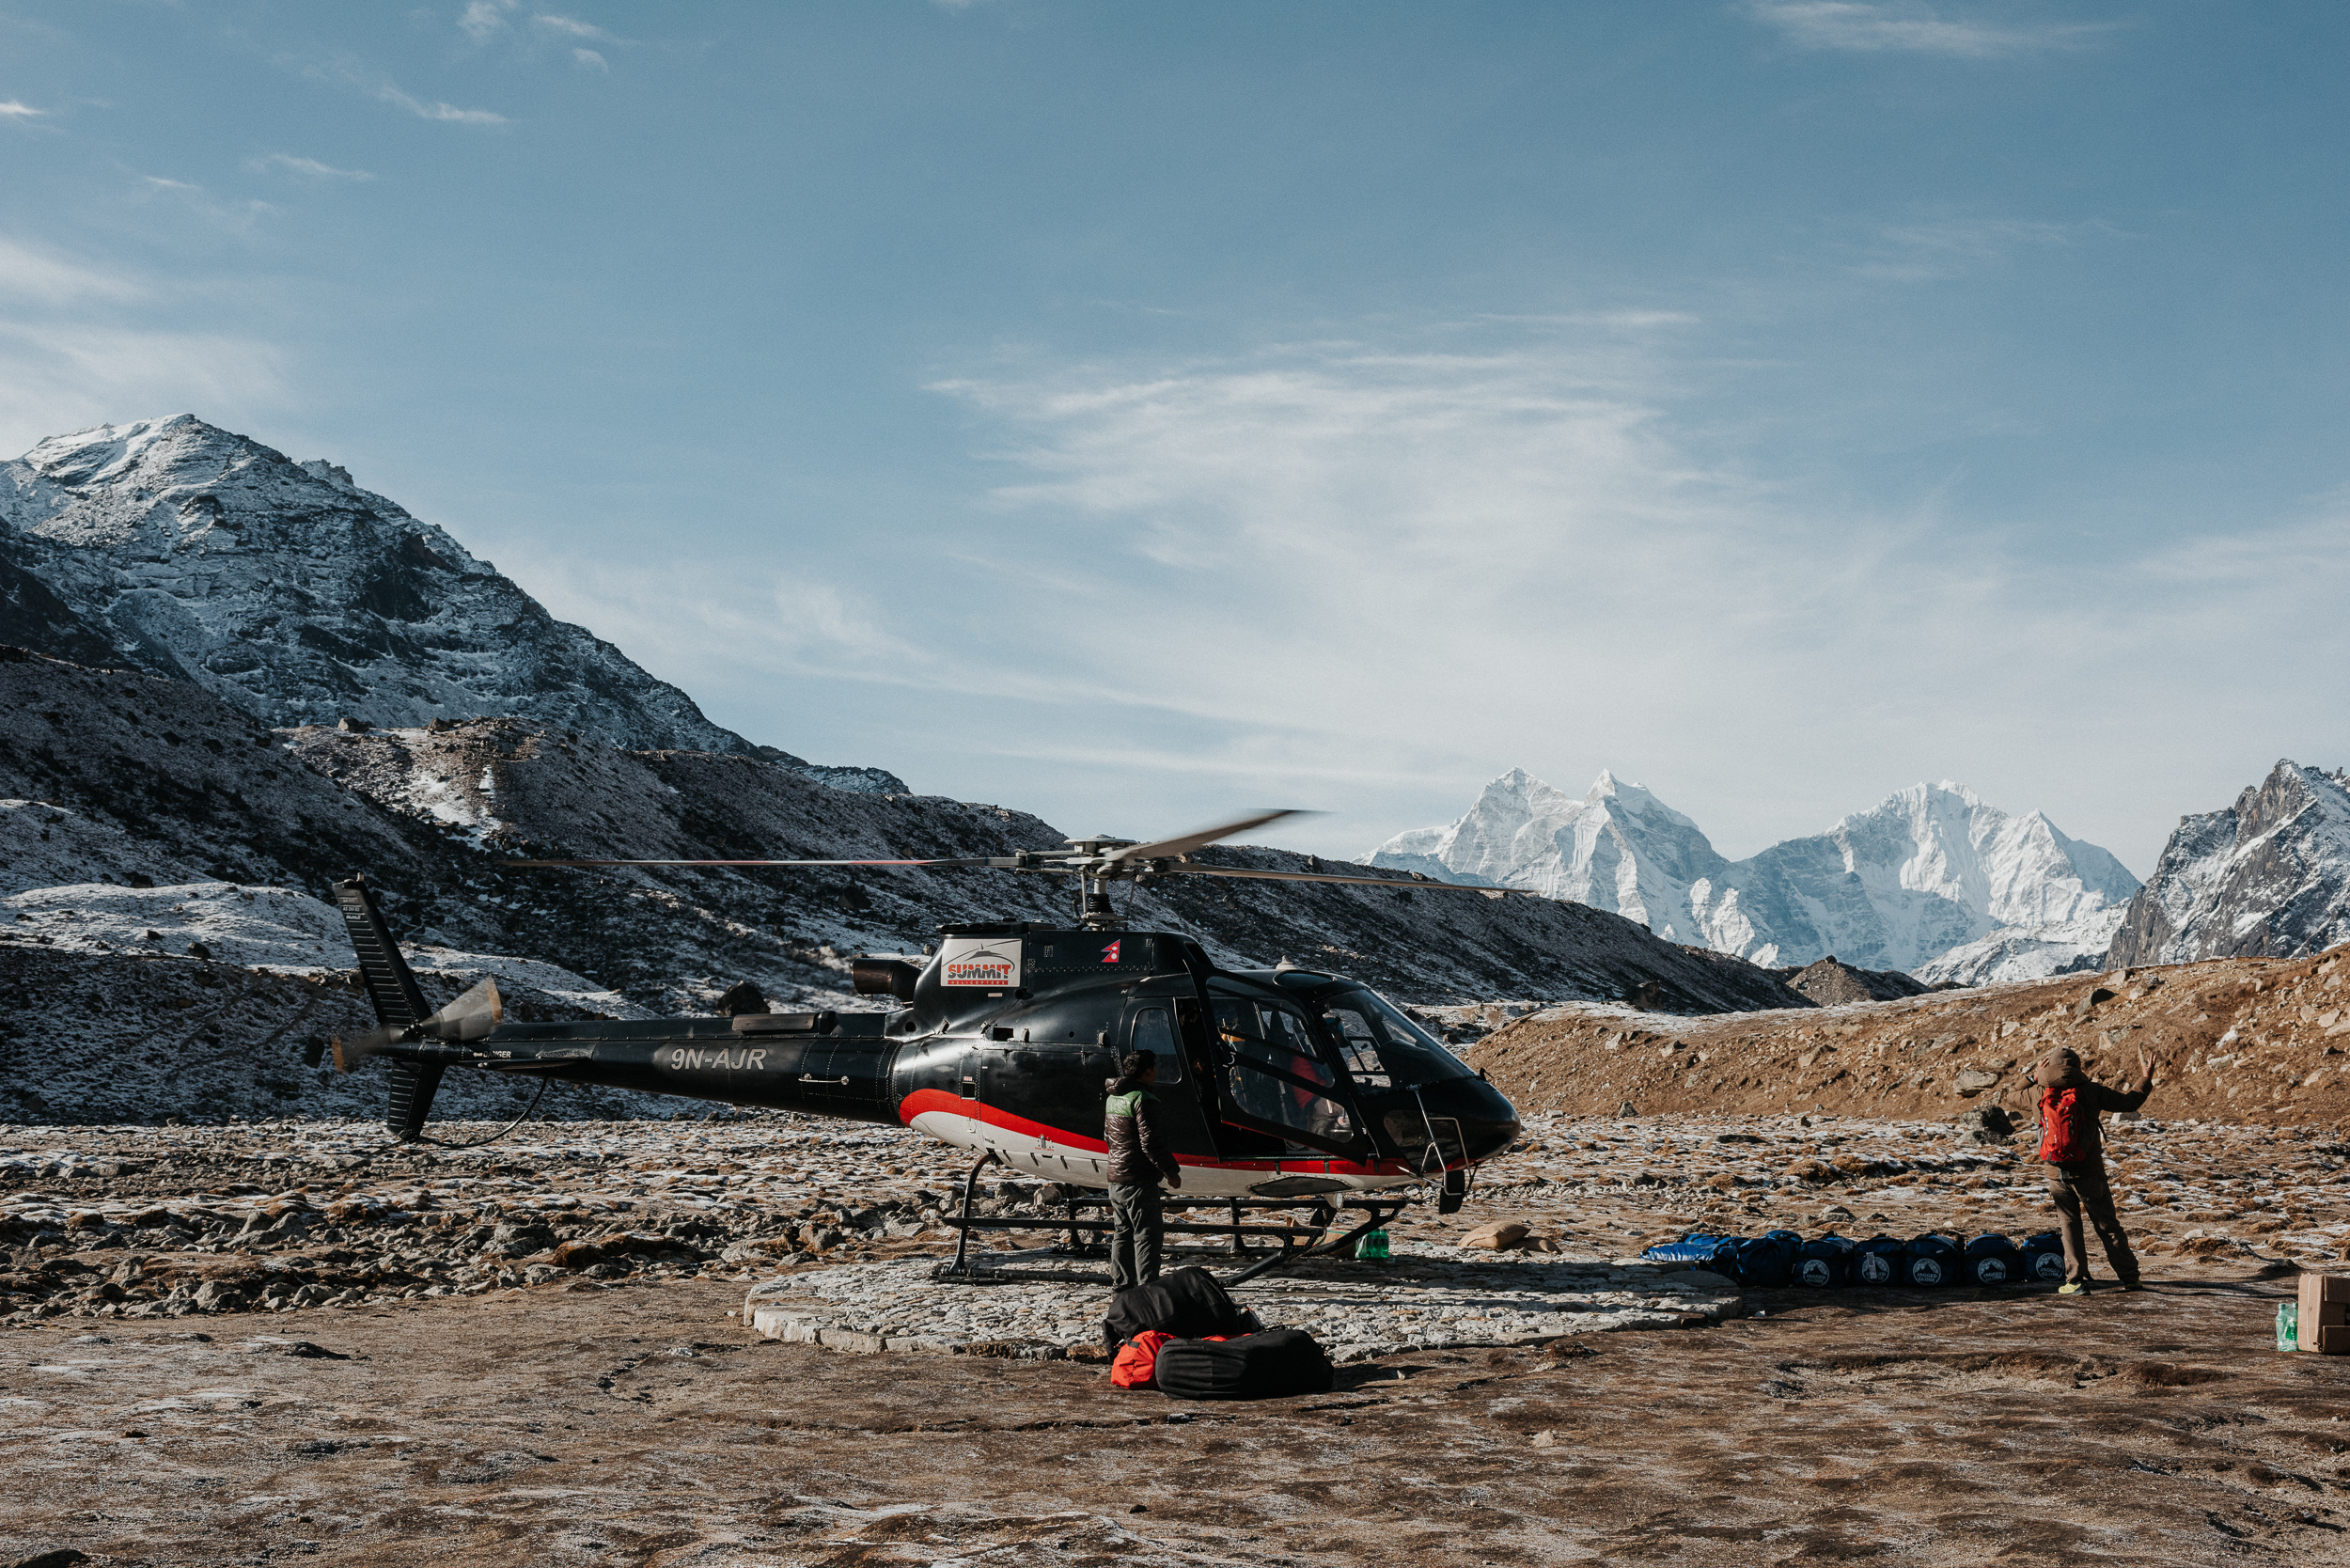 Nepal_EverestBaseCamp_2019_TaraShupe_Photography_DSC_4140.jpg